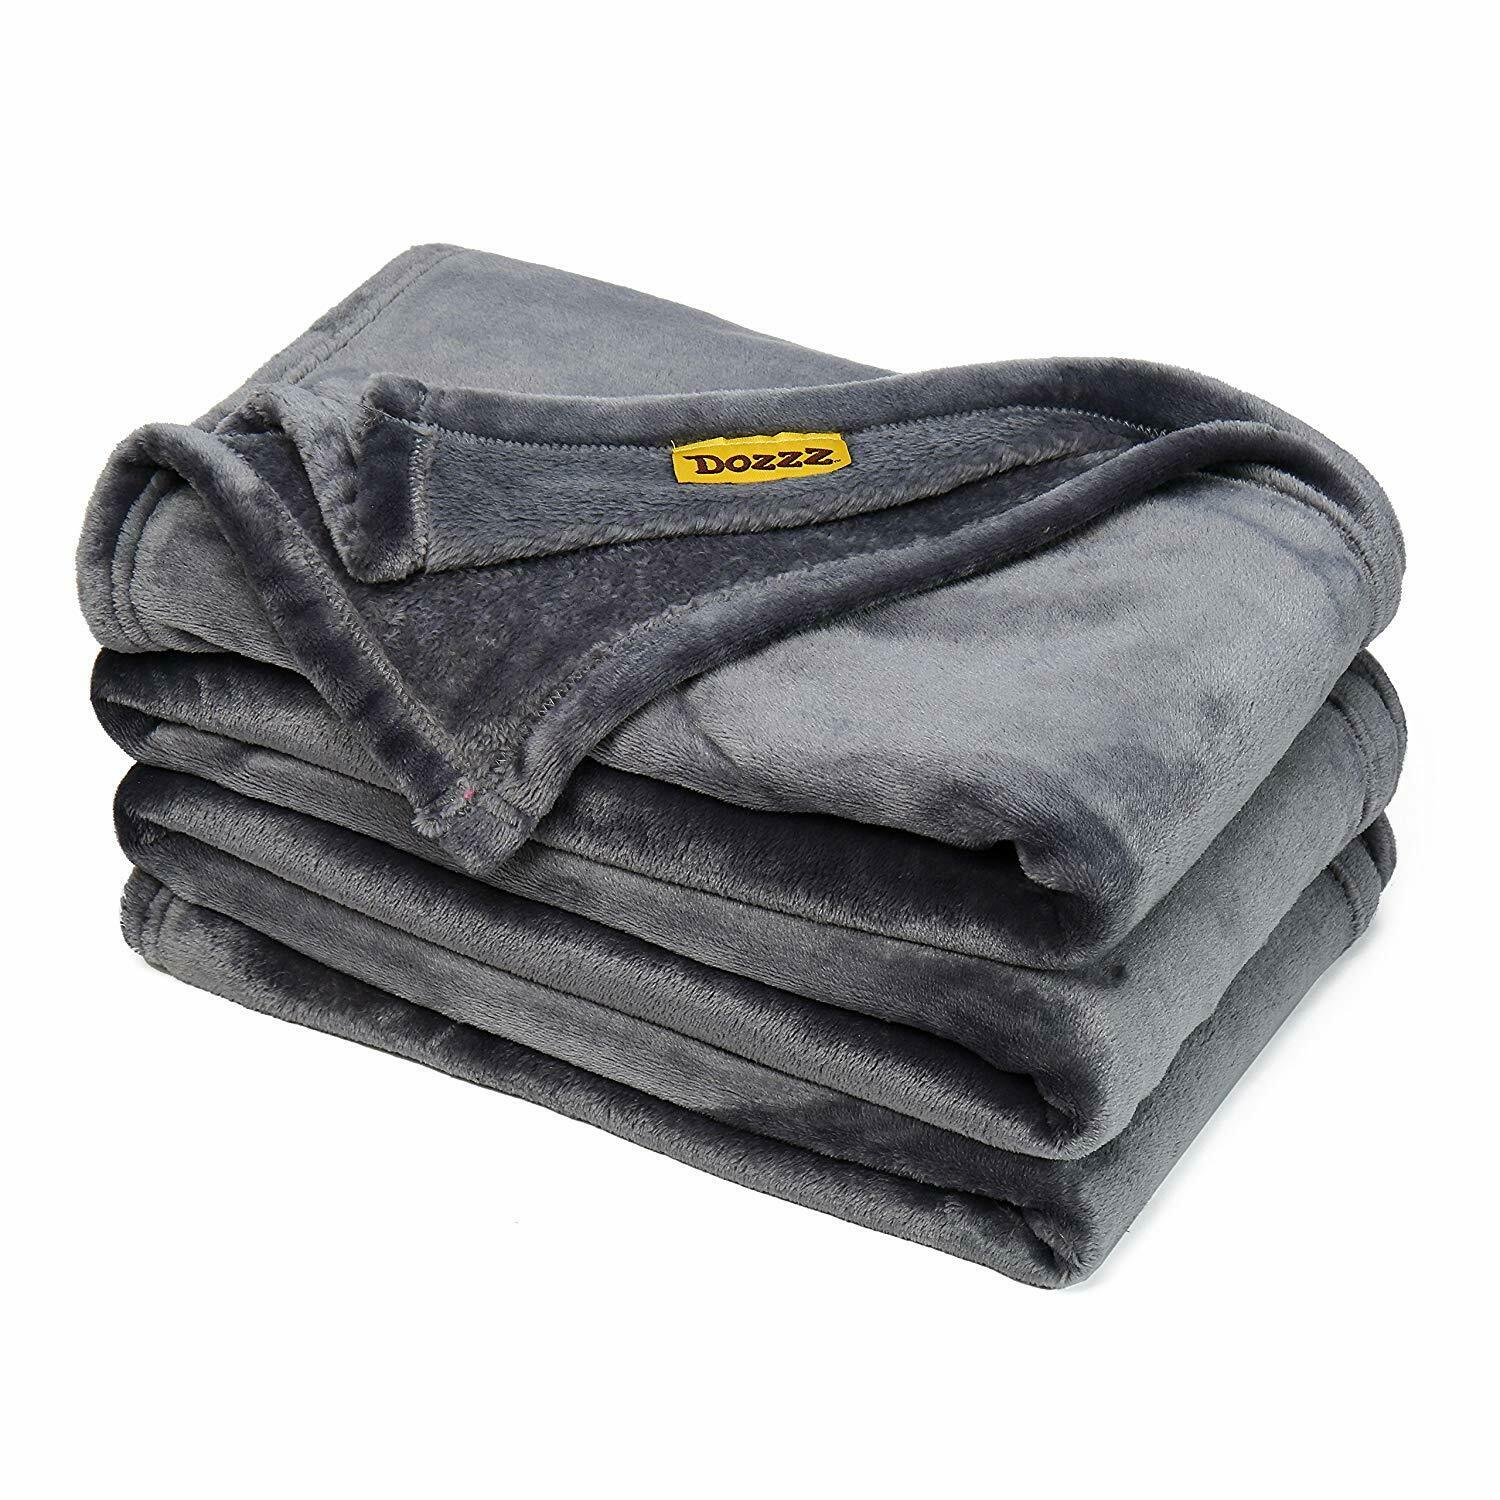 Oversize Flannel Throw Blanket with Cozy Plush Soft Cover Fo